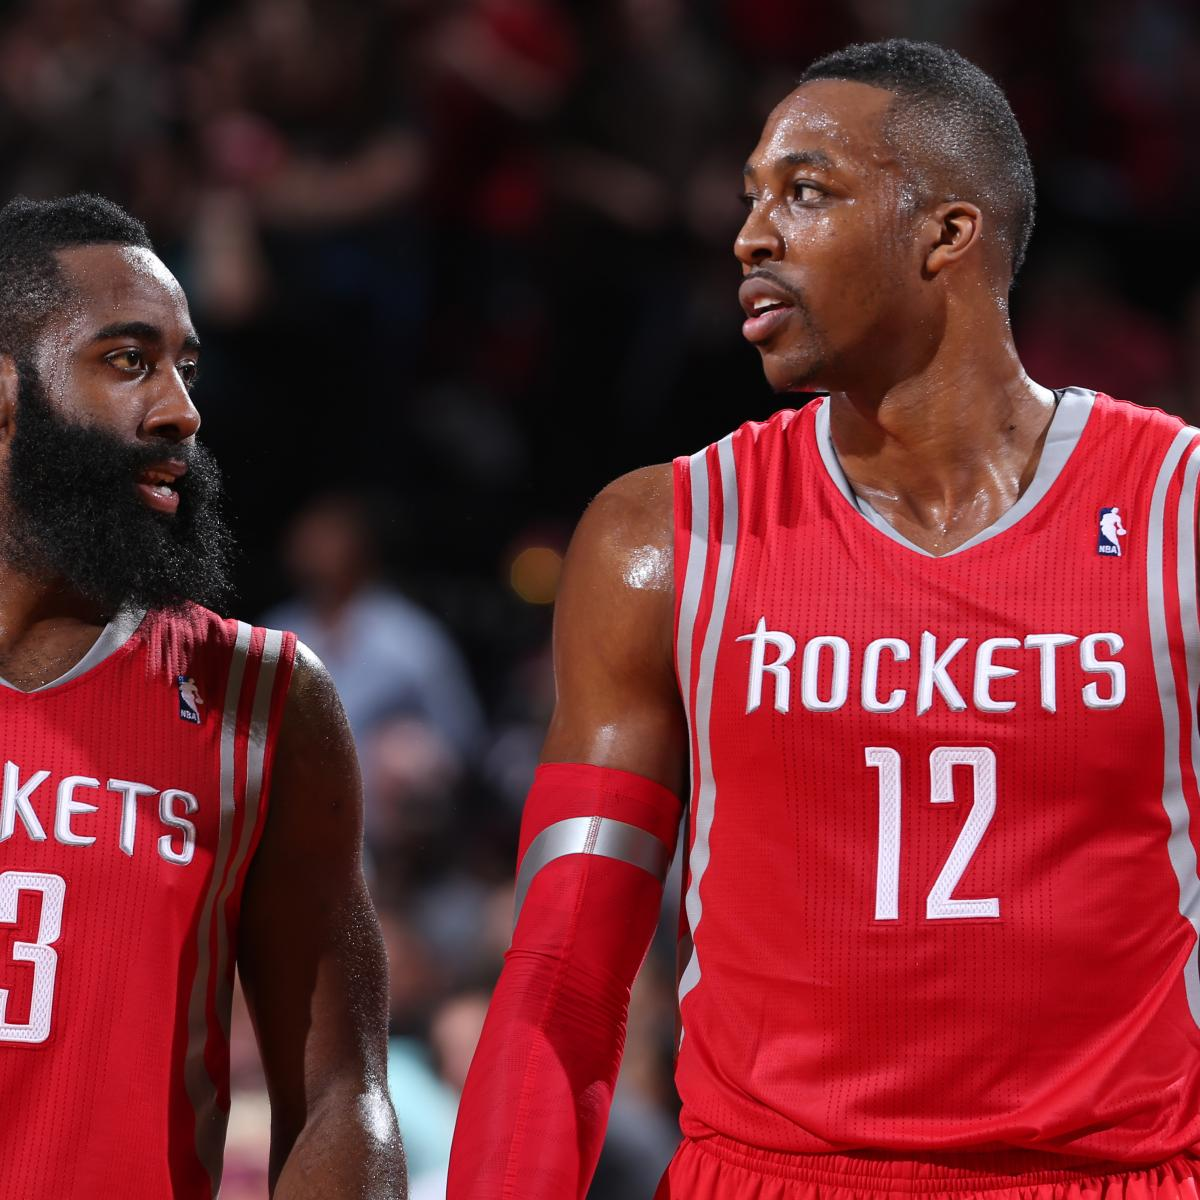 James Harden Free Agency: Best Potential 2014 Free Agents To Pair With Dwight Howard